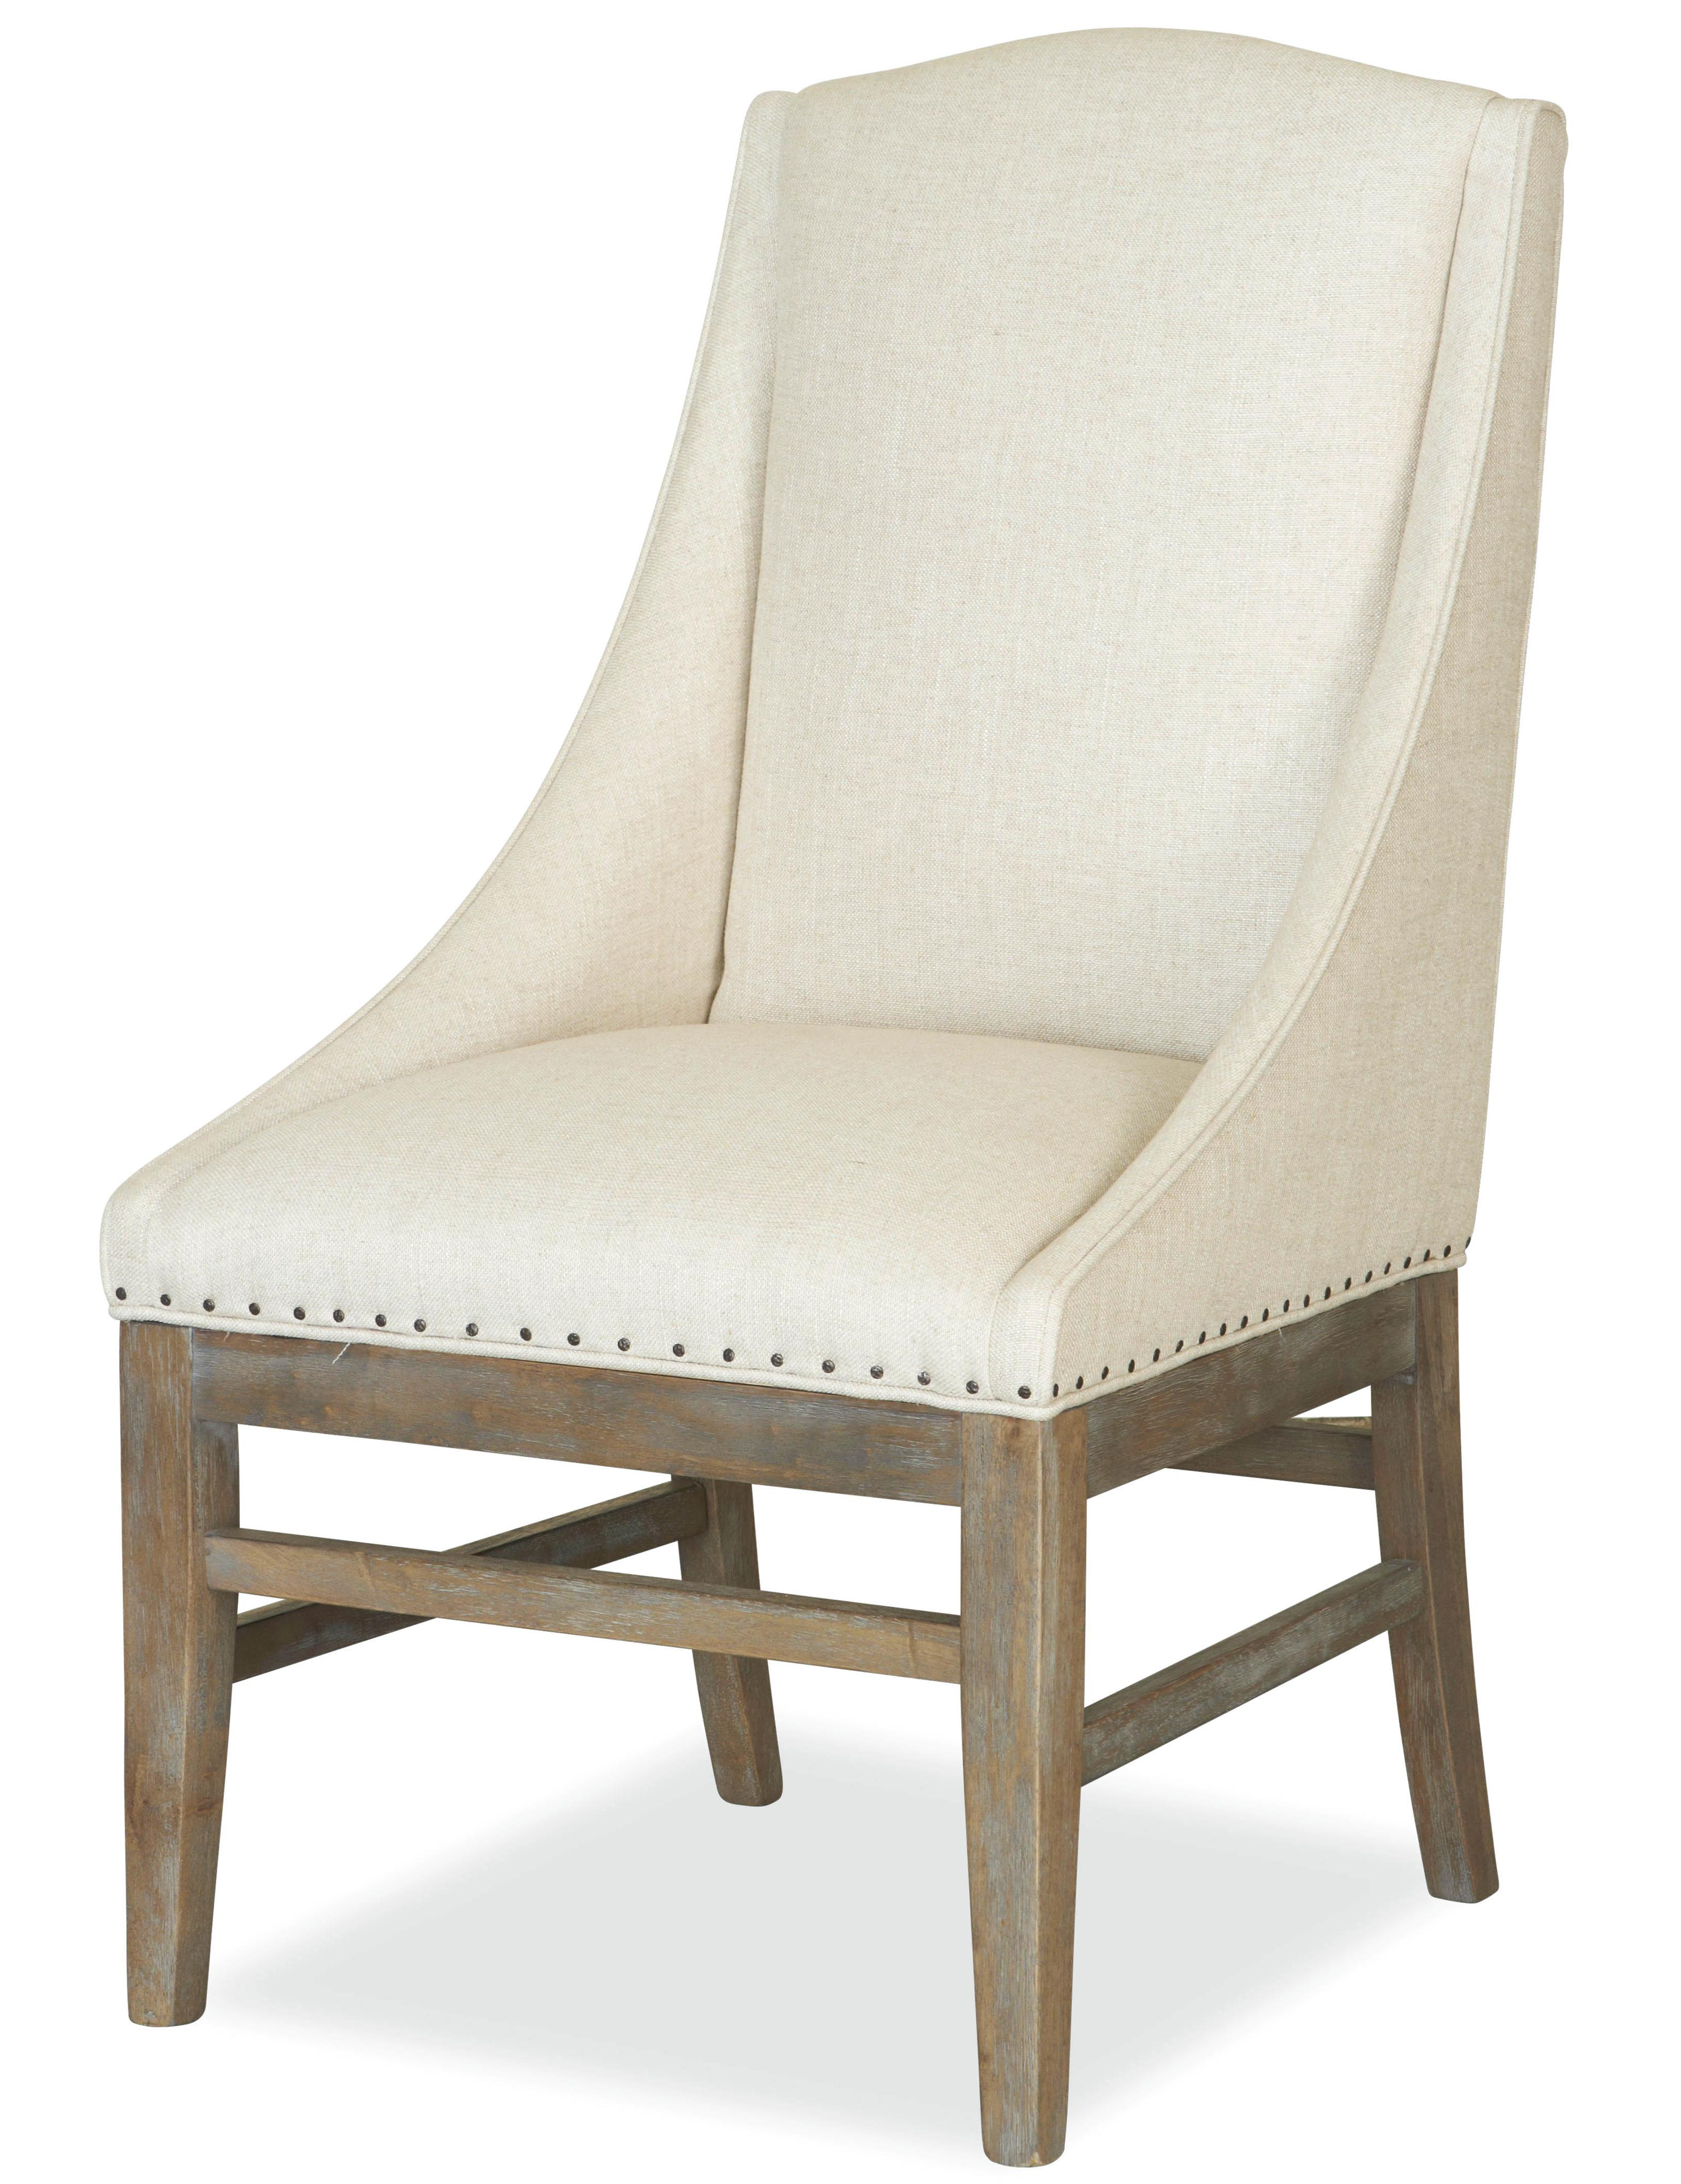 Universal Great Rooms - Berkeley 3 Urban Arm Chair - Item Number: 316739-RTA